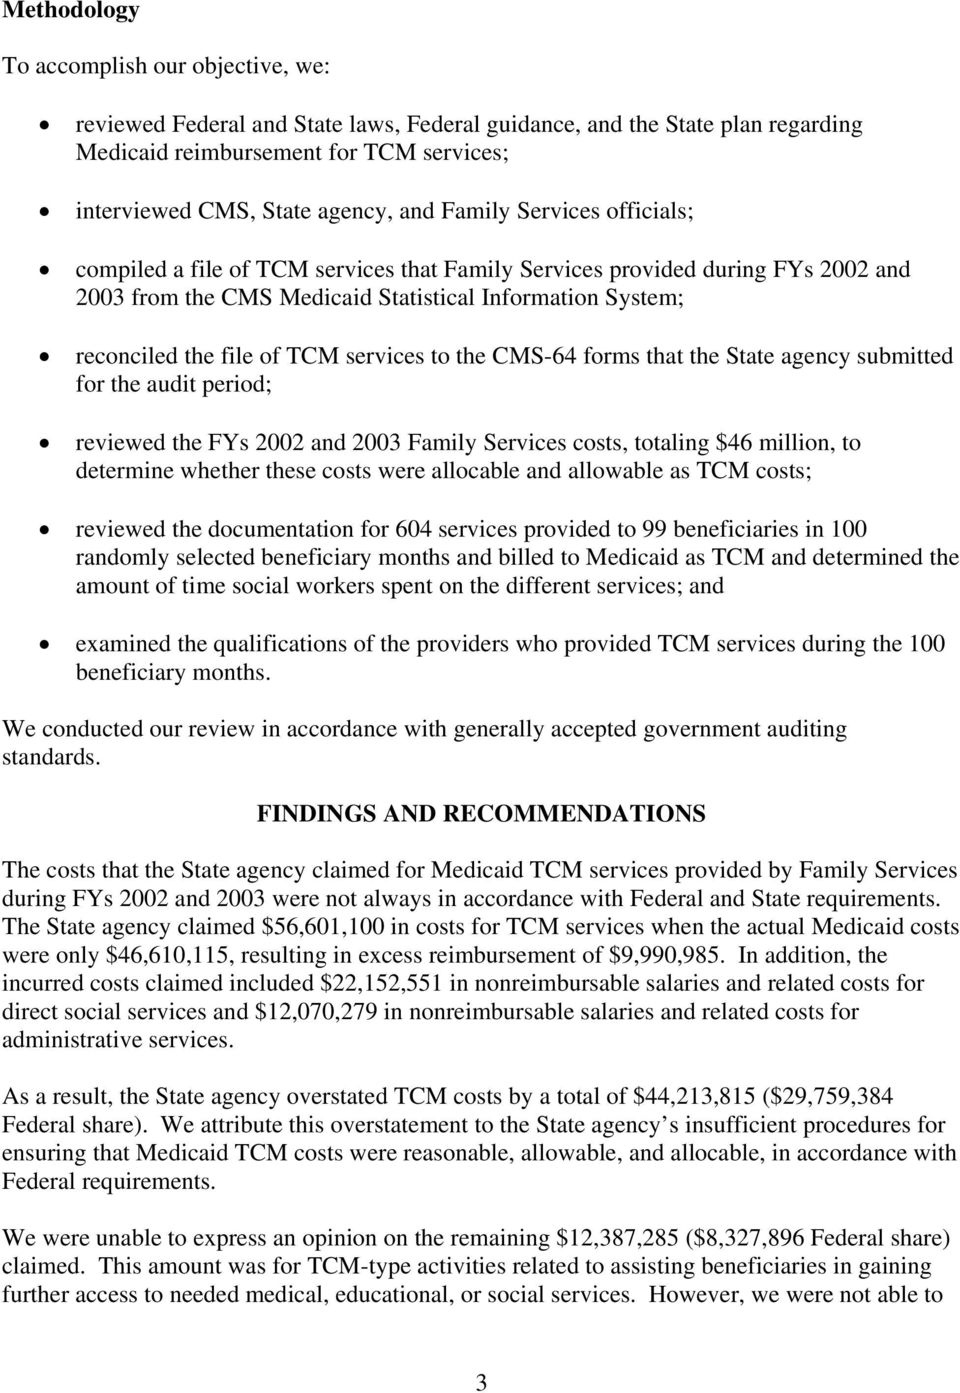 services to the CMS-64 forms that the State agency submitted for the audit period; reviewed the FYs 2002 and 2003 Family Services costs, totaling $46 million, to determine whether these costs were